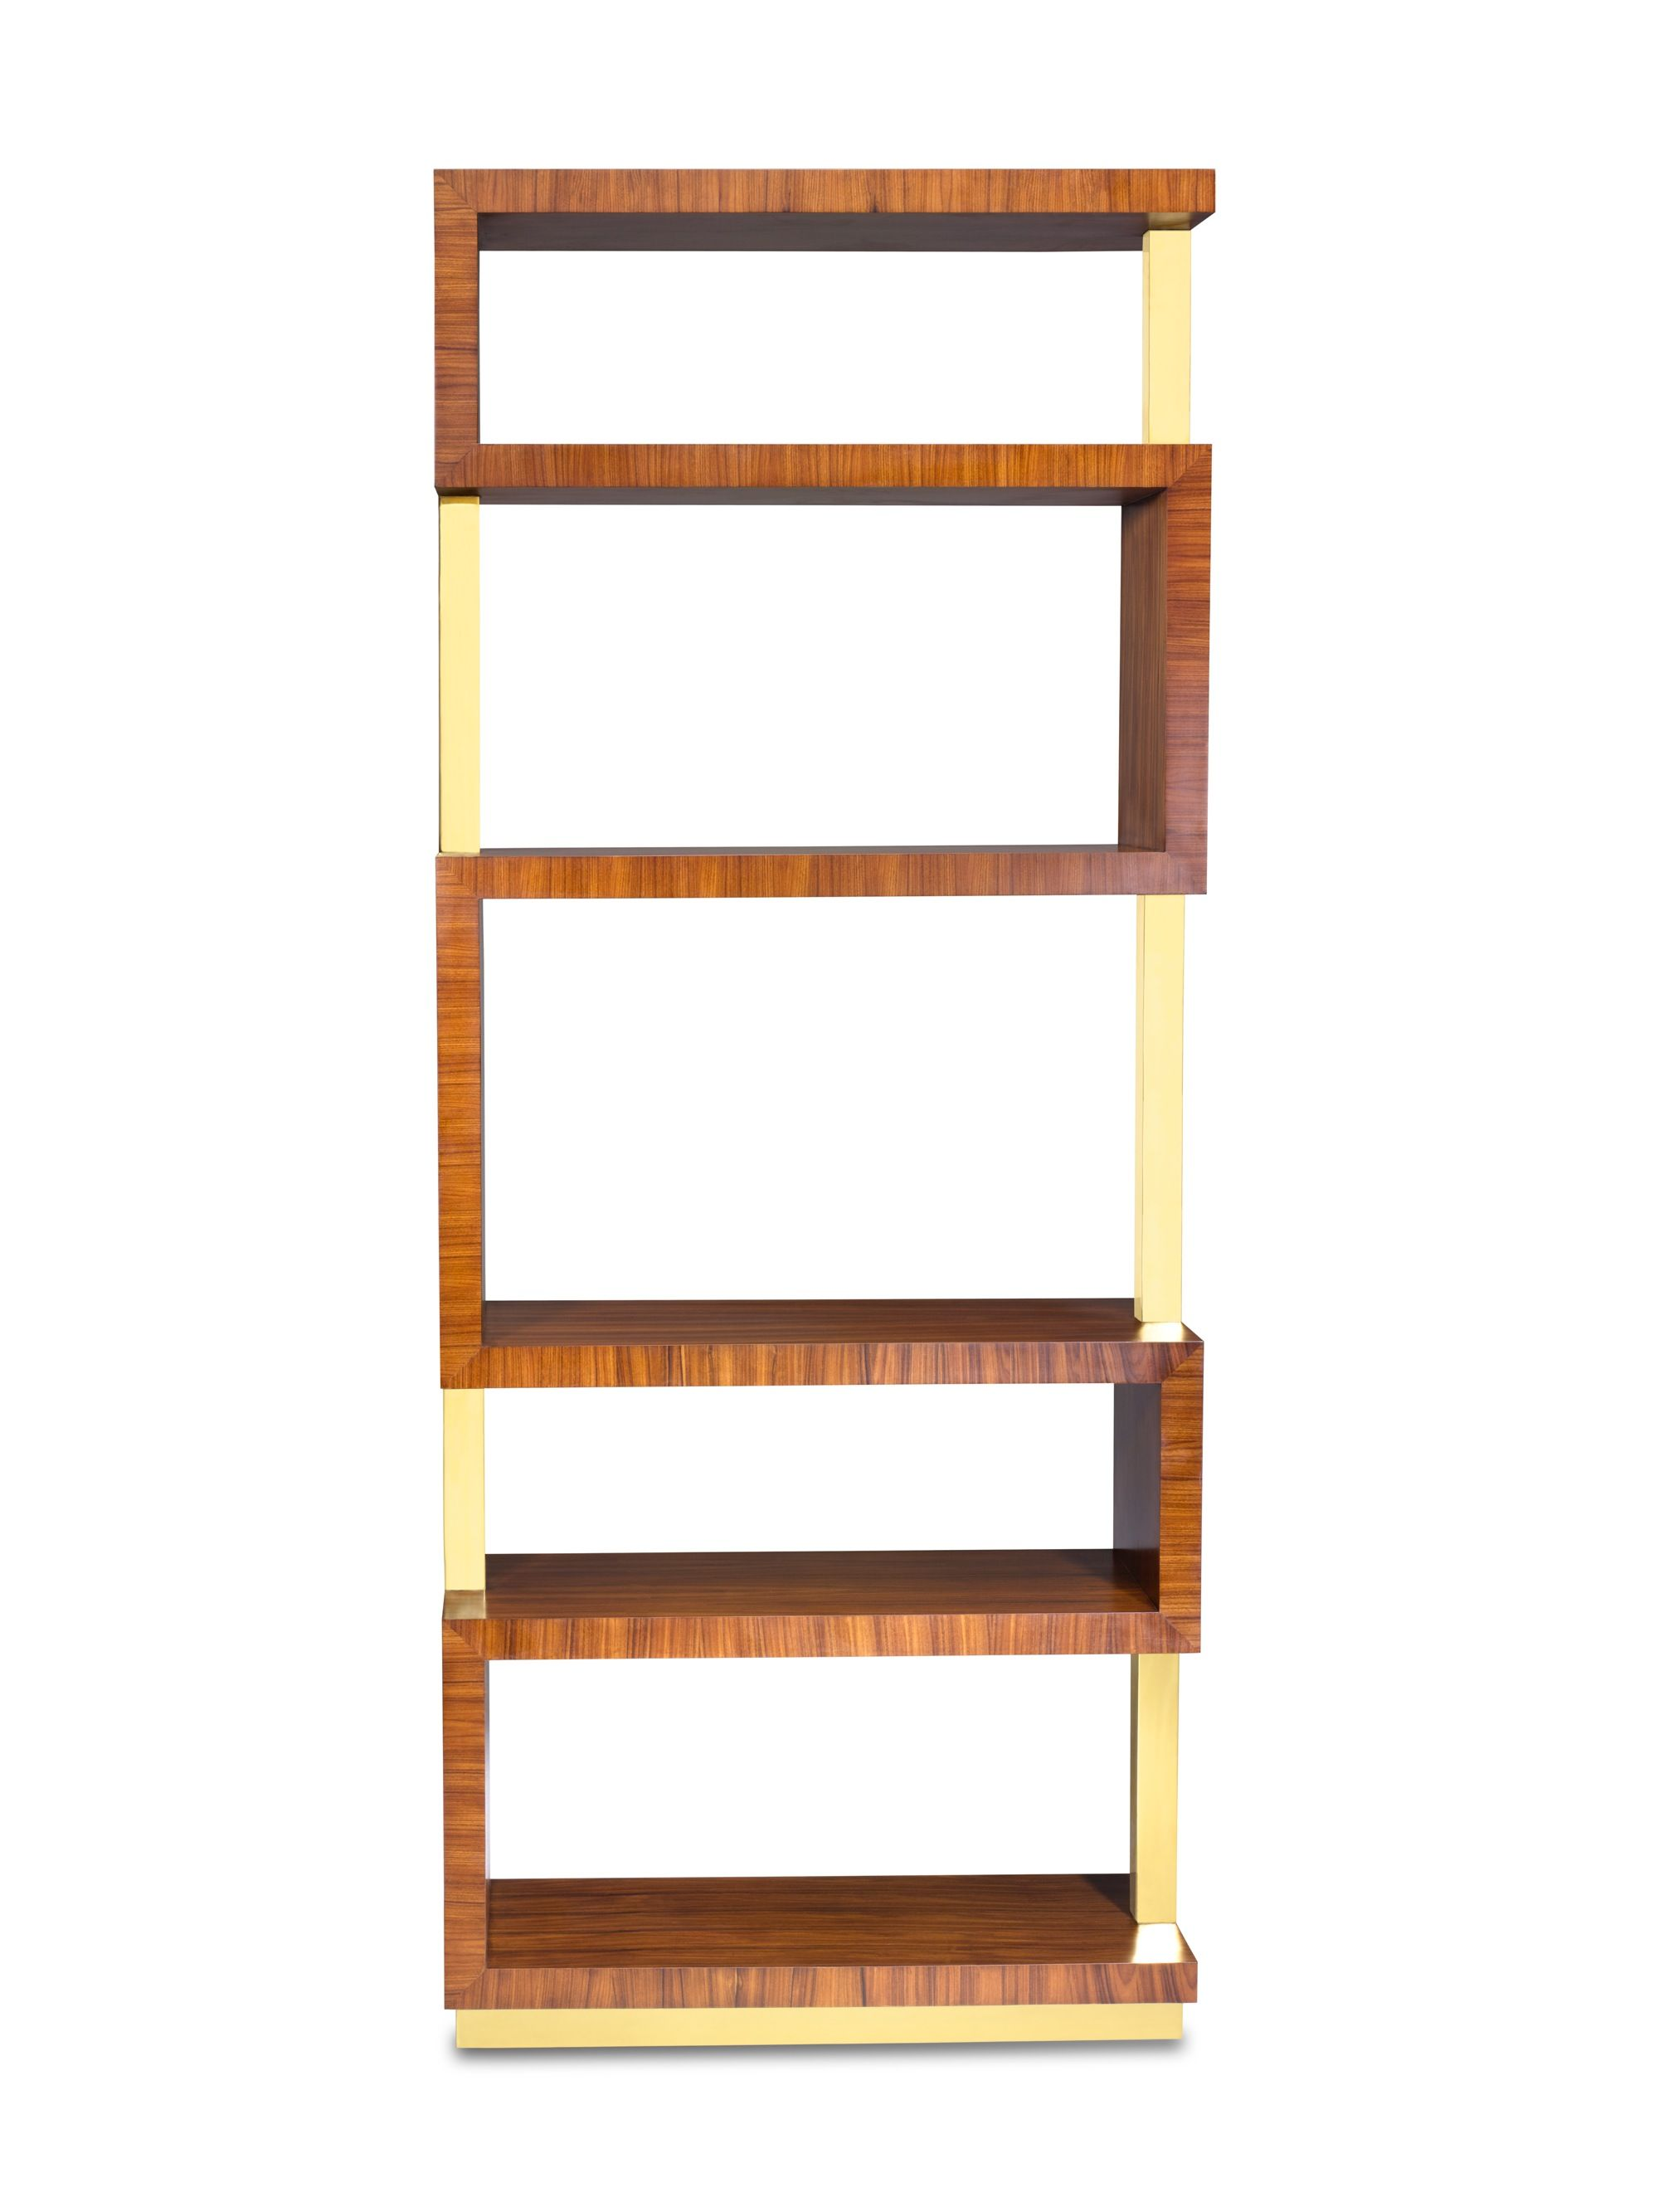 The Bold Rosewood And Br Of This Parrish Etagere Twist Turn For A Graphic Accent